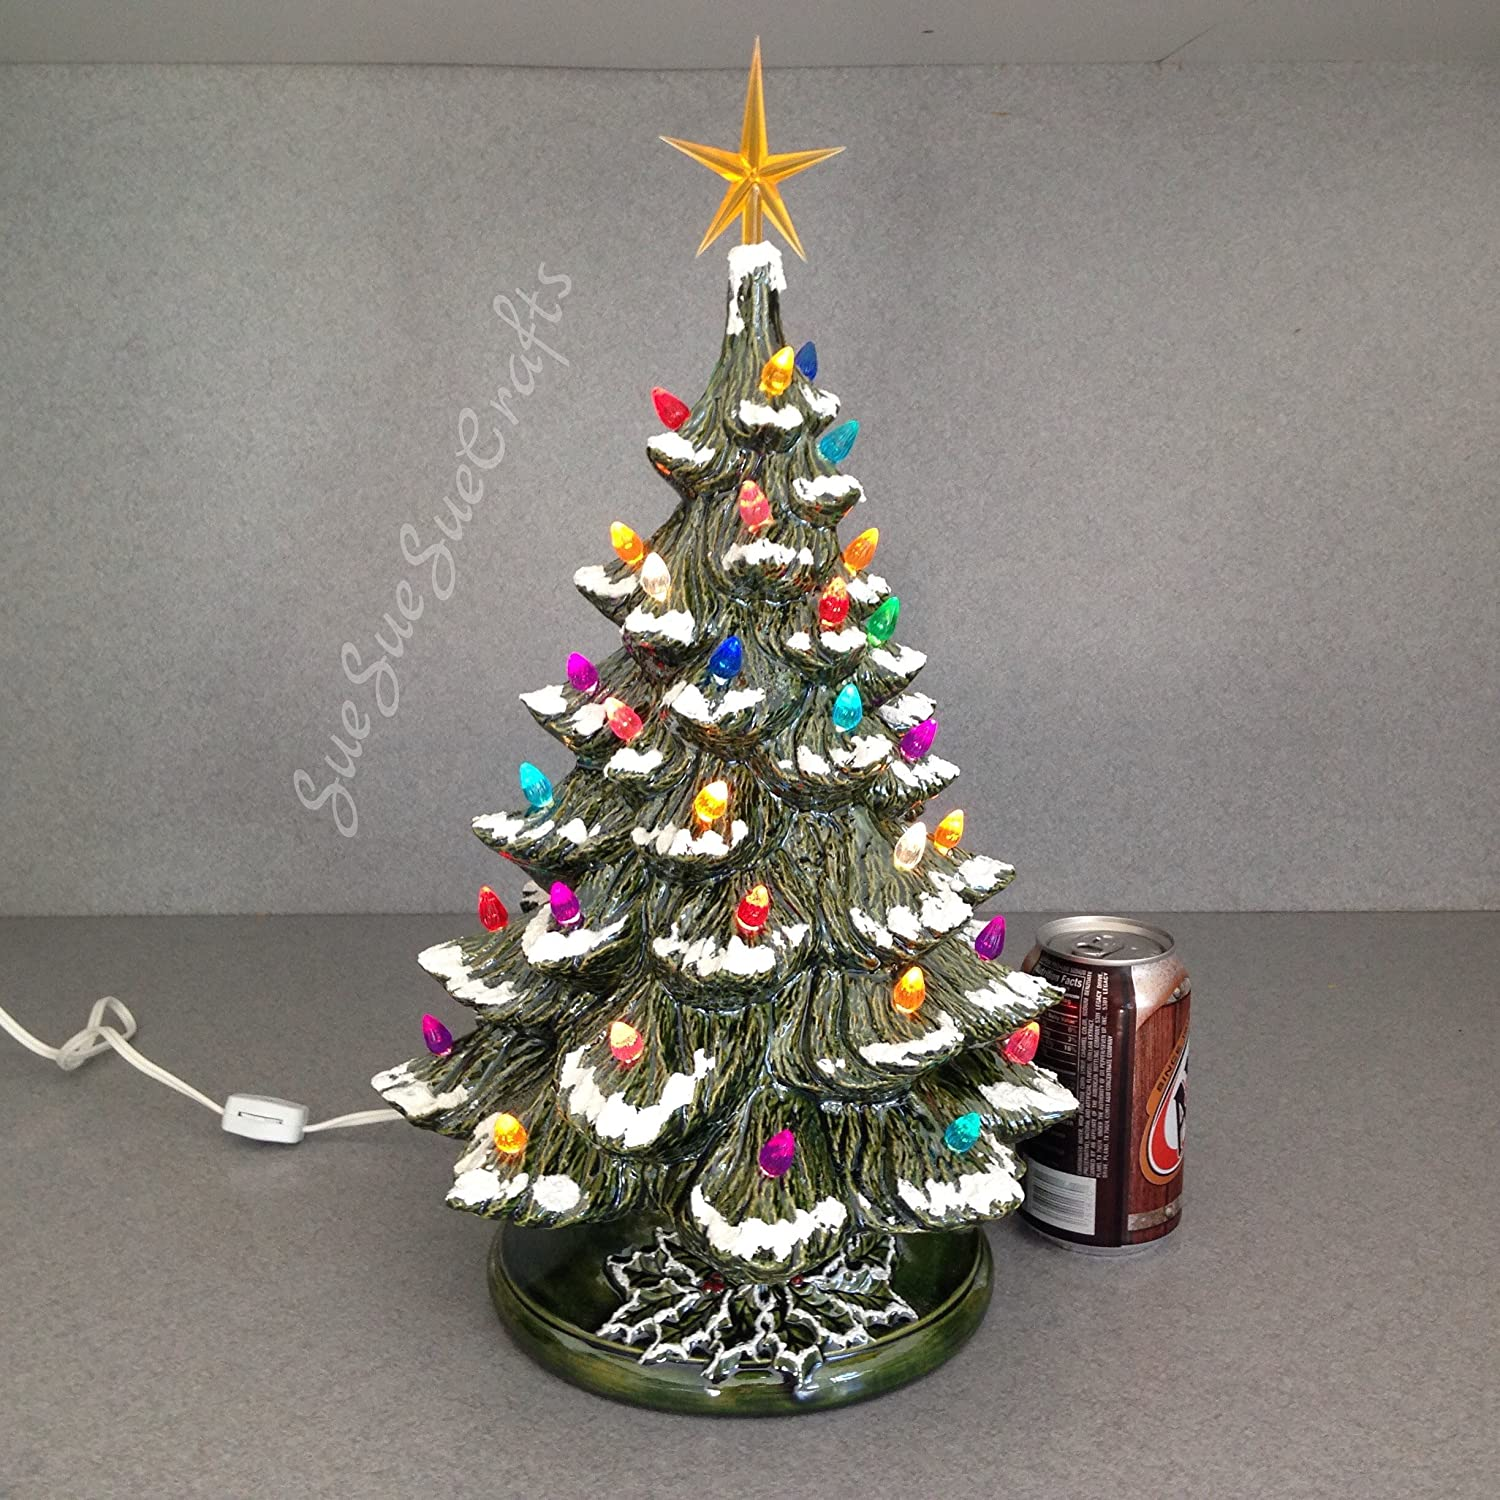 Old Fashioned Ceramic Christmas Tree | www.topsimages.com